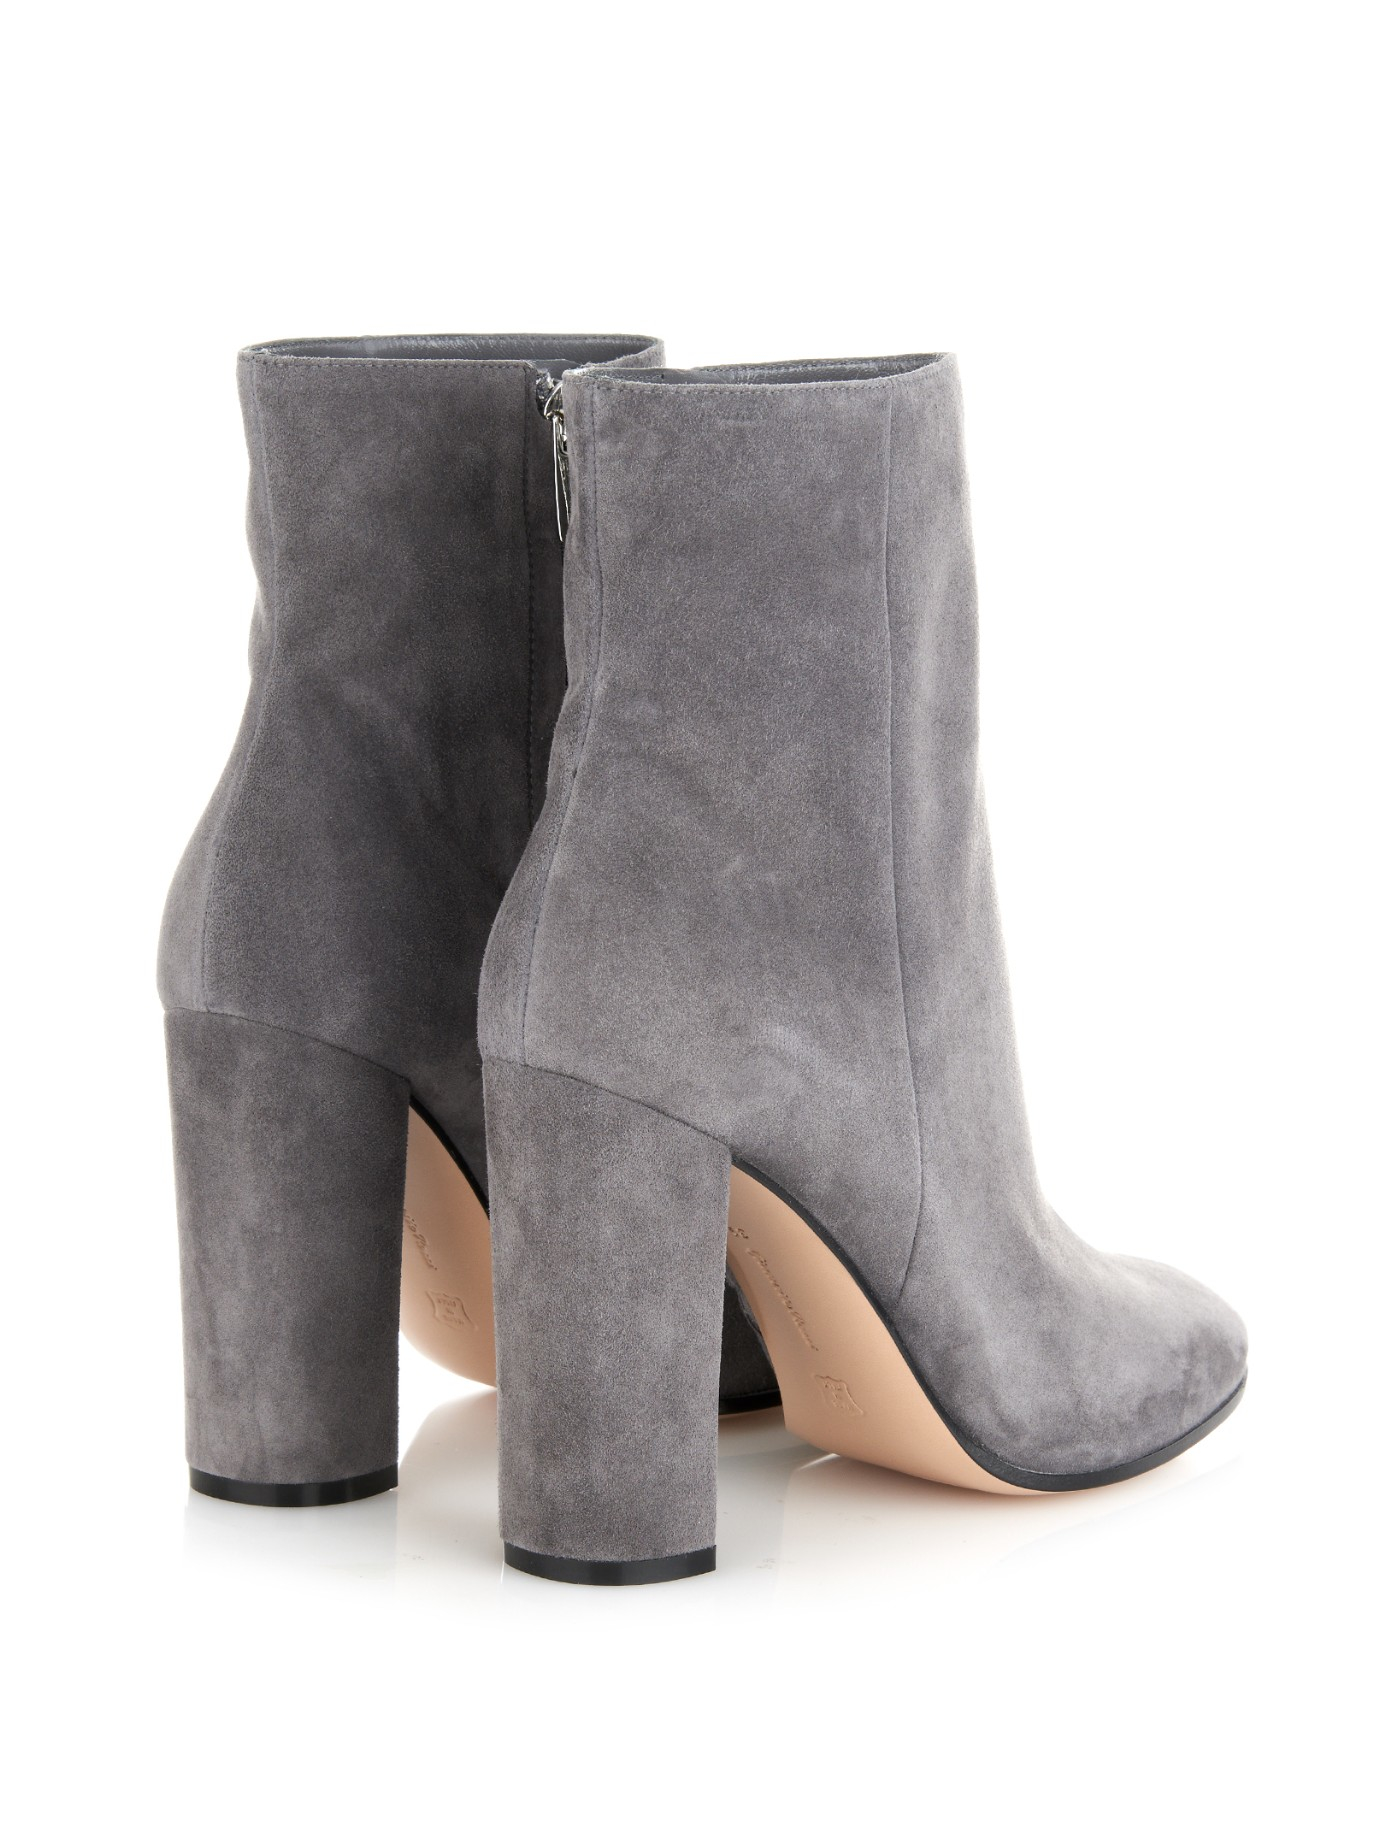 3e18fa687 Gianvito Rossi Rolling Suede Ankle Boots in Gray - Lyst